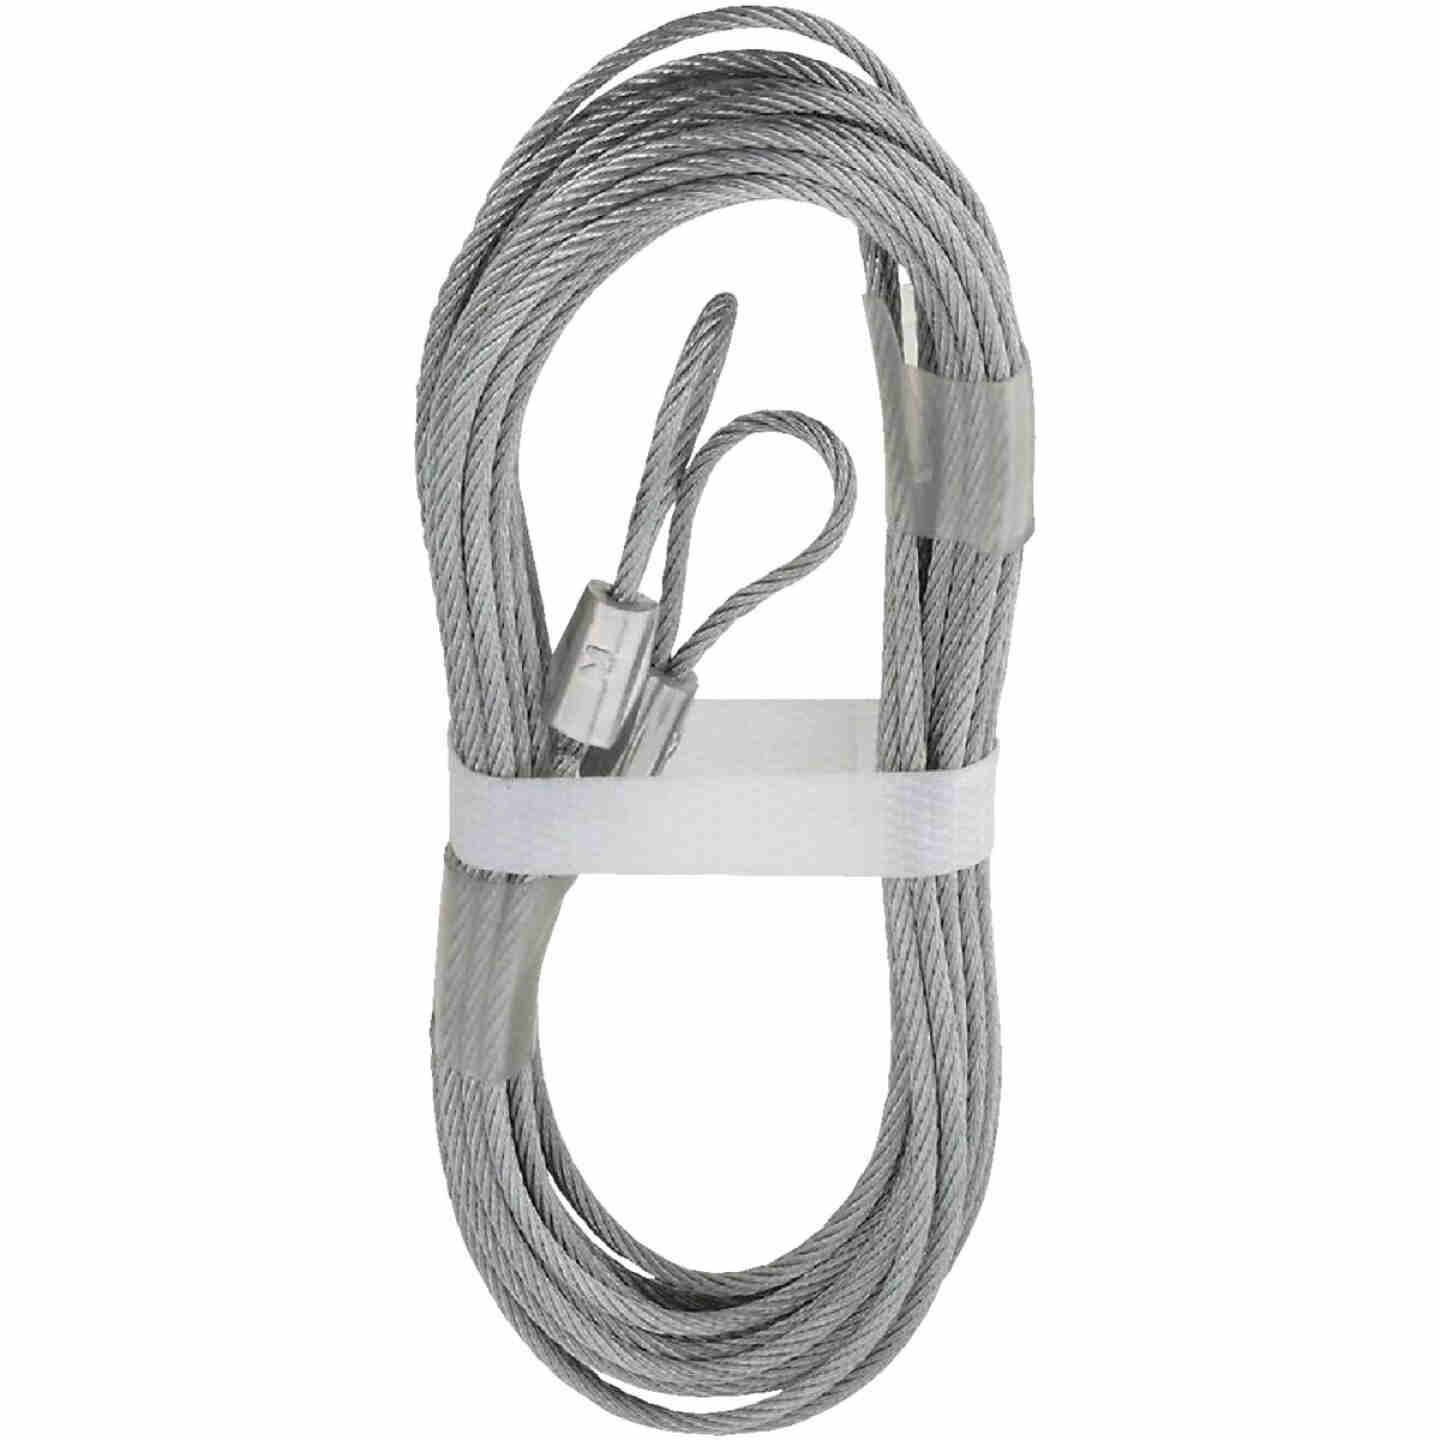 Prime-Line 3/32 In. Carbon Steel Extension Cable Image 1